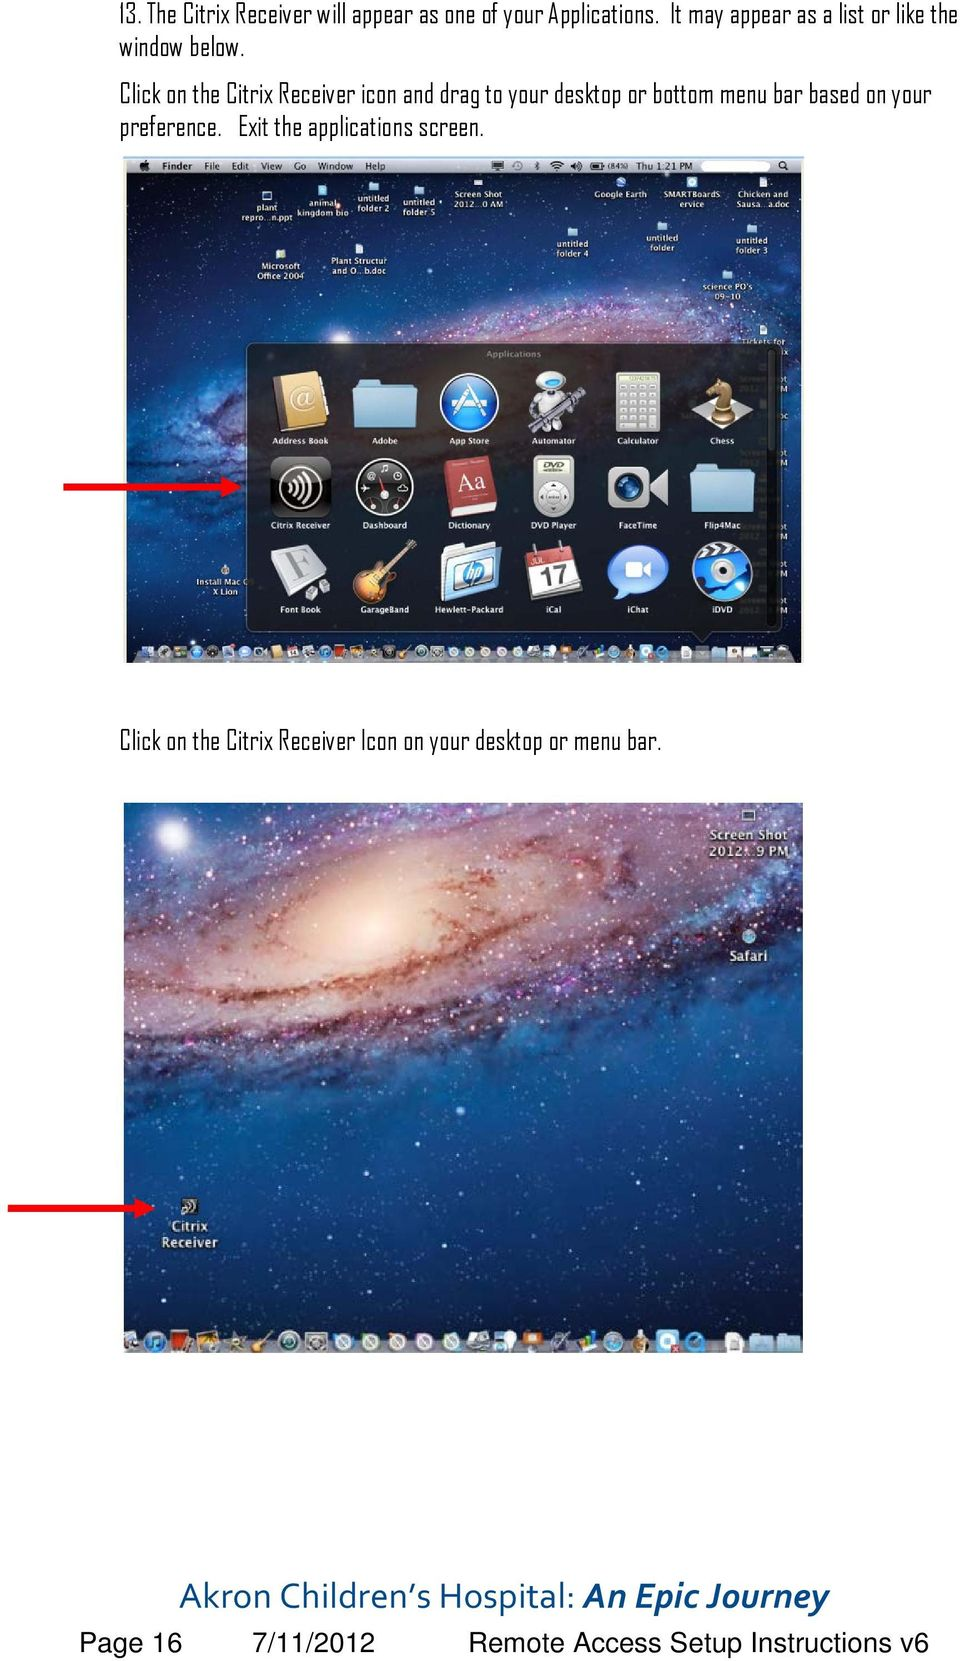 Click on the Citrix Receiver icon and drag to your desktop or bottom menu bar based on your